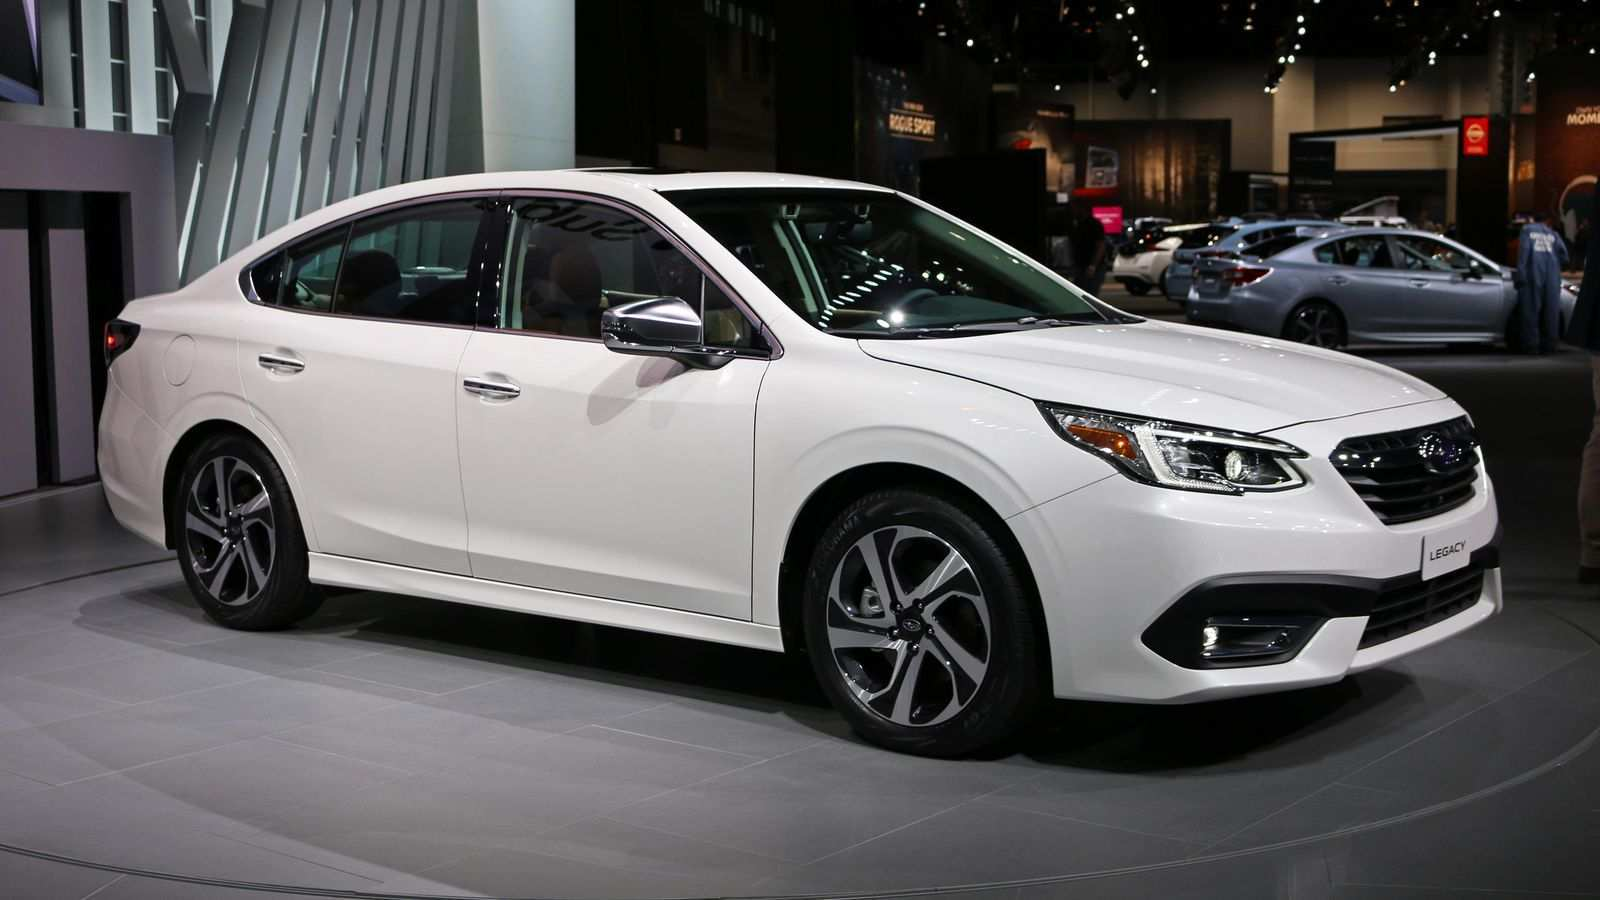 59 The Best 2020 Subaru Legacy Turbo Price Design And Review